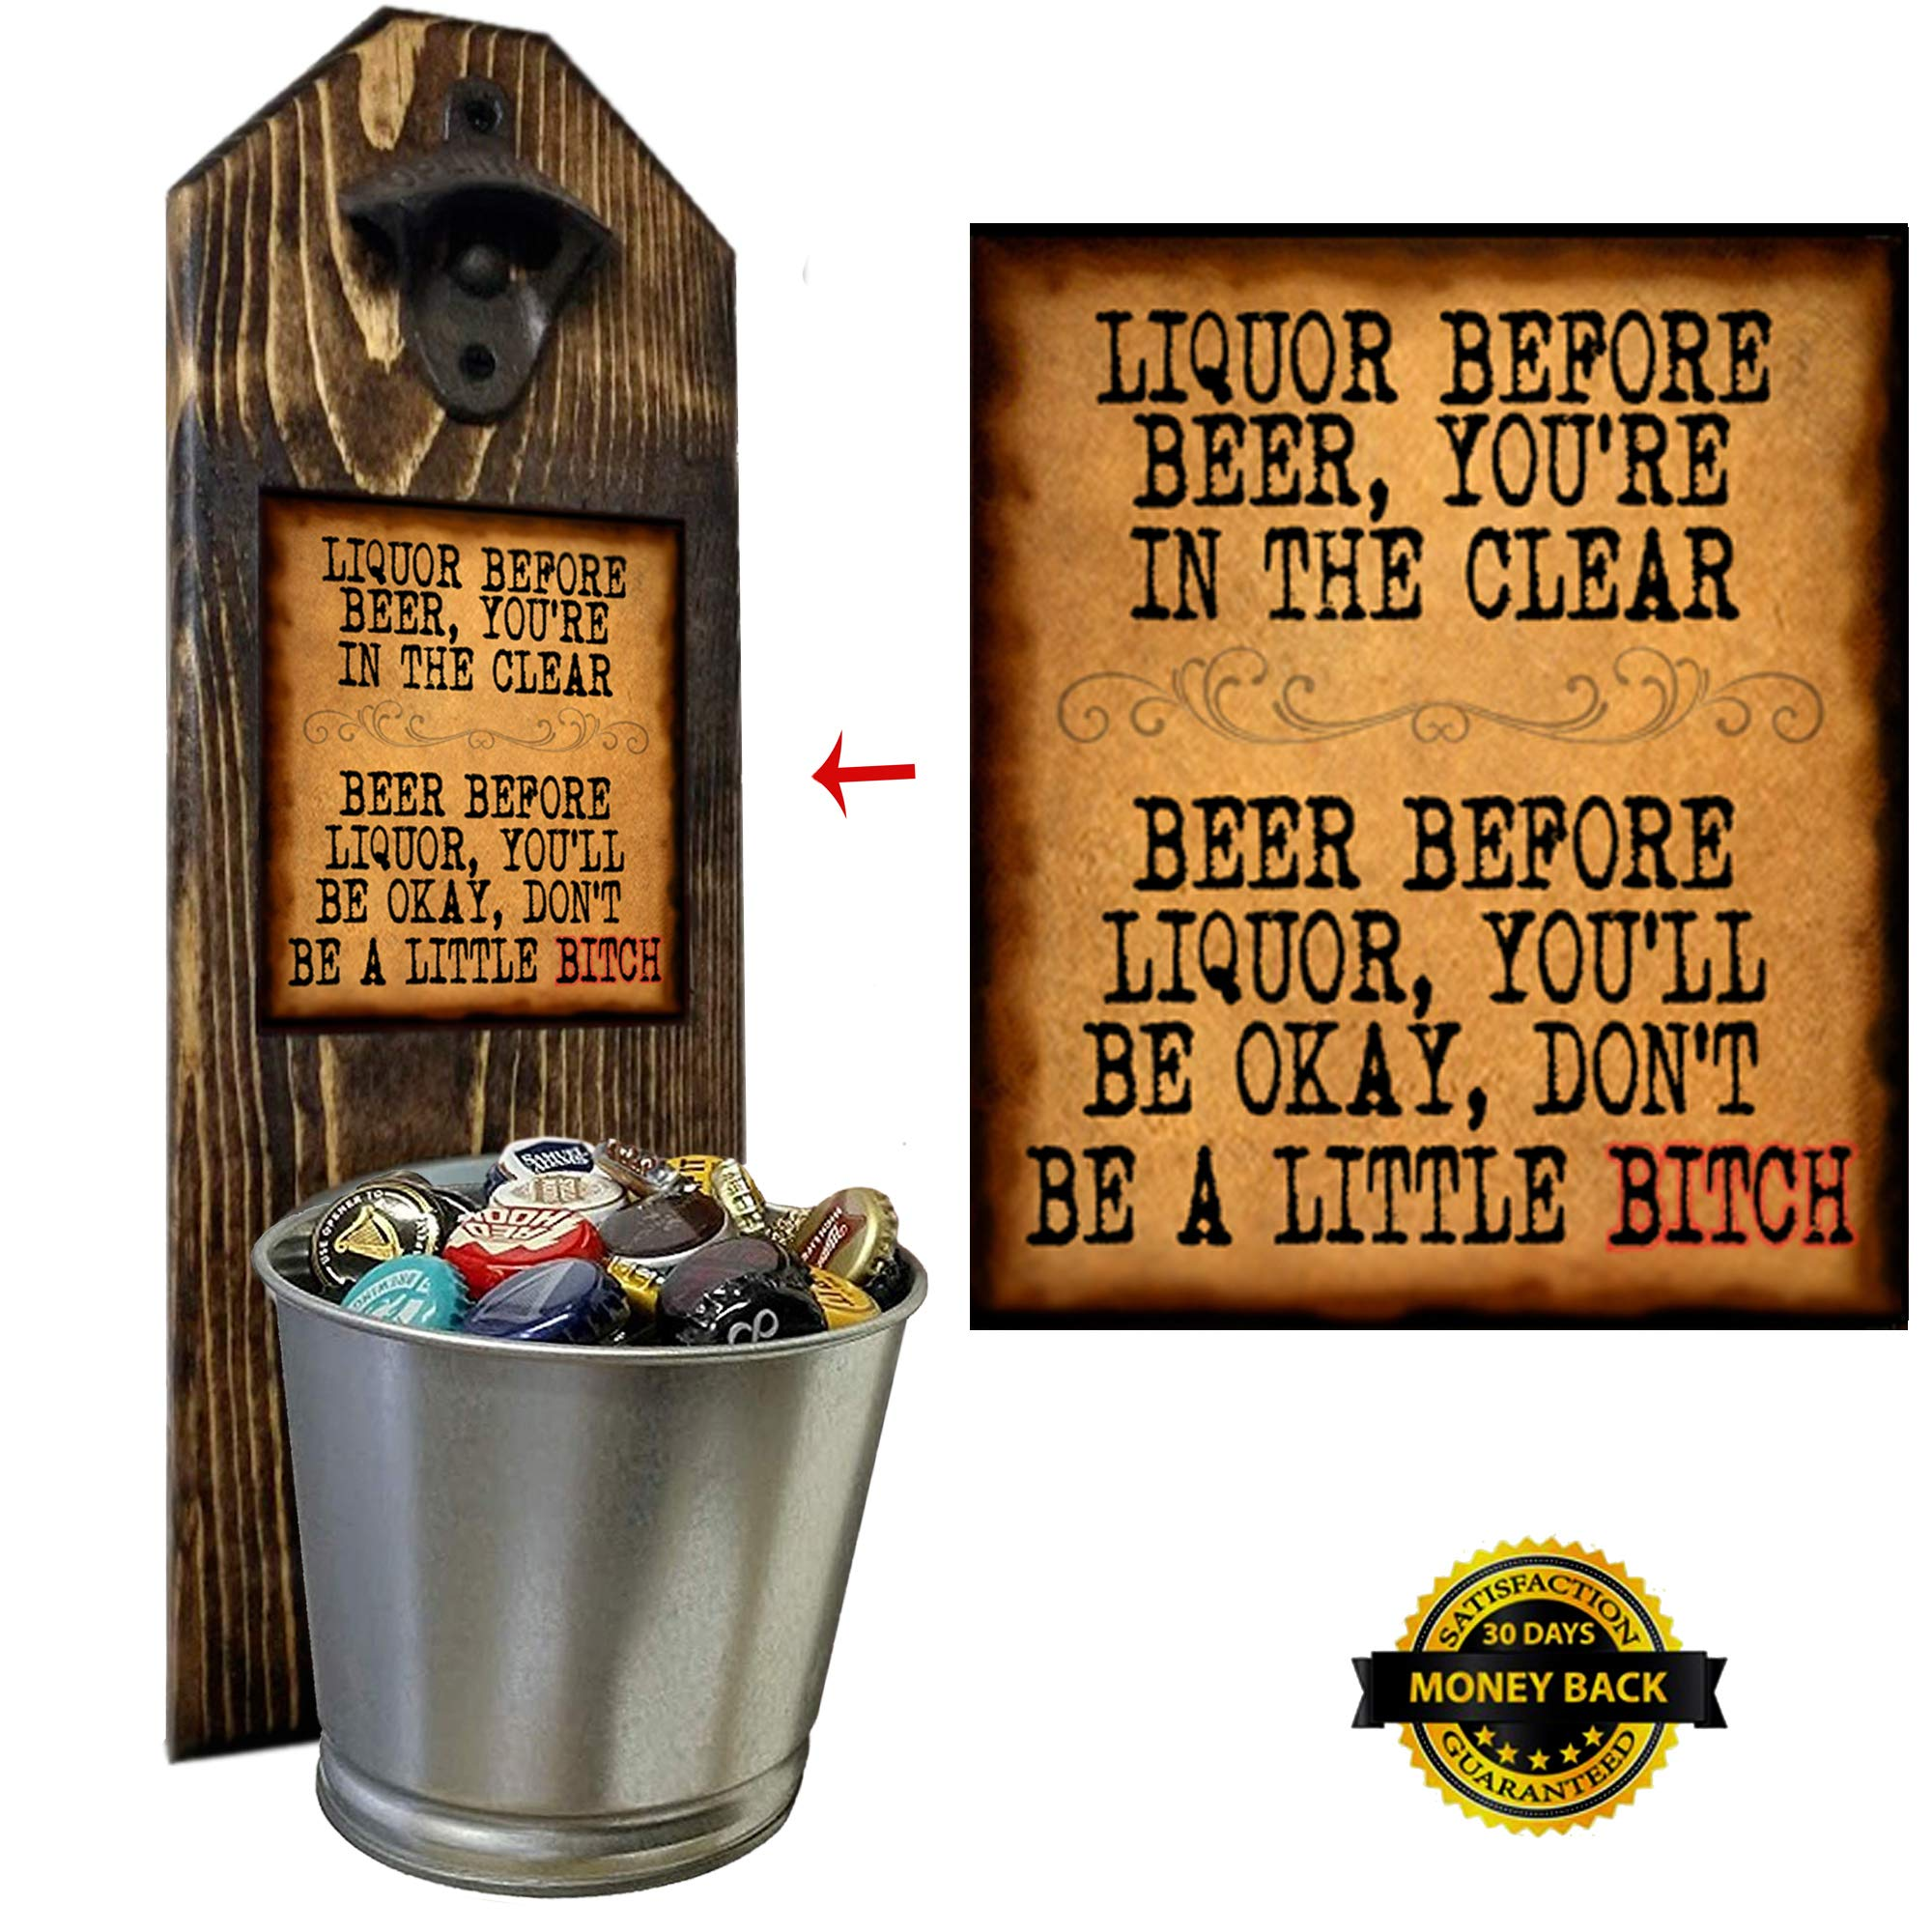 ''Liquor Before Beer'' Bottle Opener and Cap Catcher, Wall Mounted - Handcrafted by a Vet - 100% Solid Pine 3/4'' Thick, Rustic Cast Iron Opener & Galvanized Bucket - To Empty, Twist the Bucket by CherryPic Junction